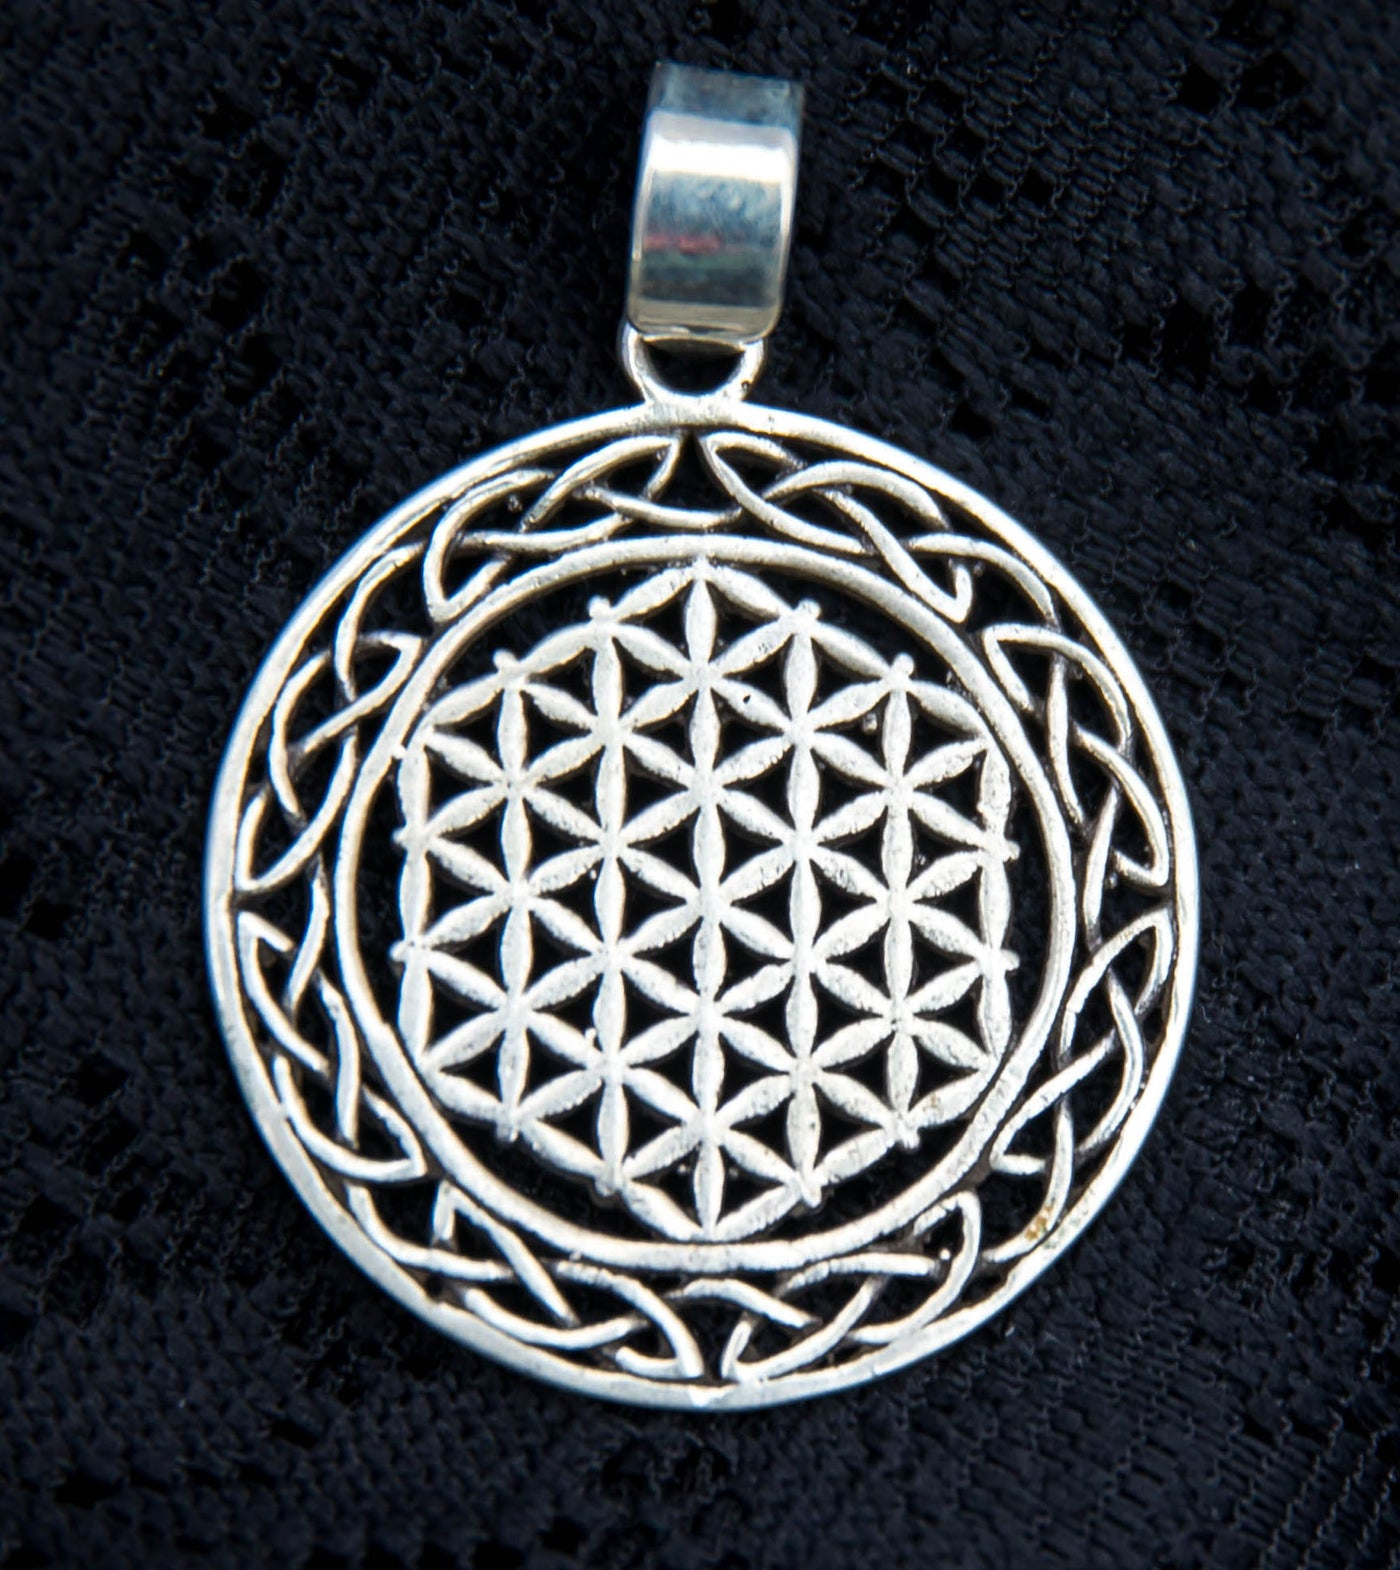 Celtic flower of life pendant spiritual gifts for him and her spiritual gift for him gift for her silver flower of life pendant celtic mozeypictures Gallery